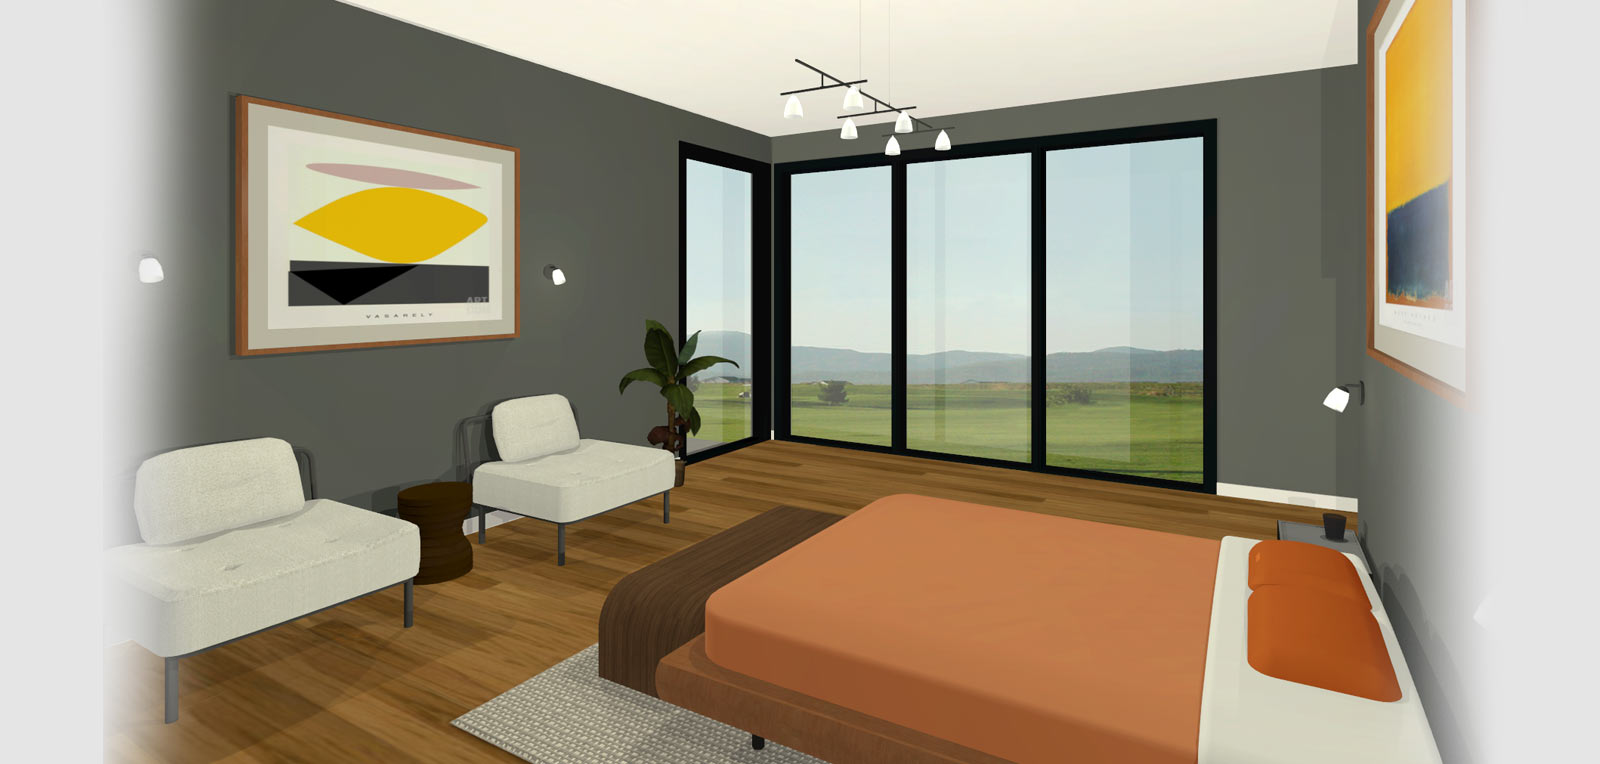 Home design software interior design software chief Home remodeling software